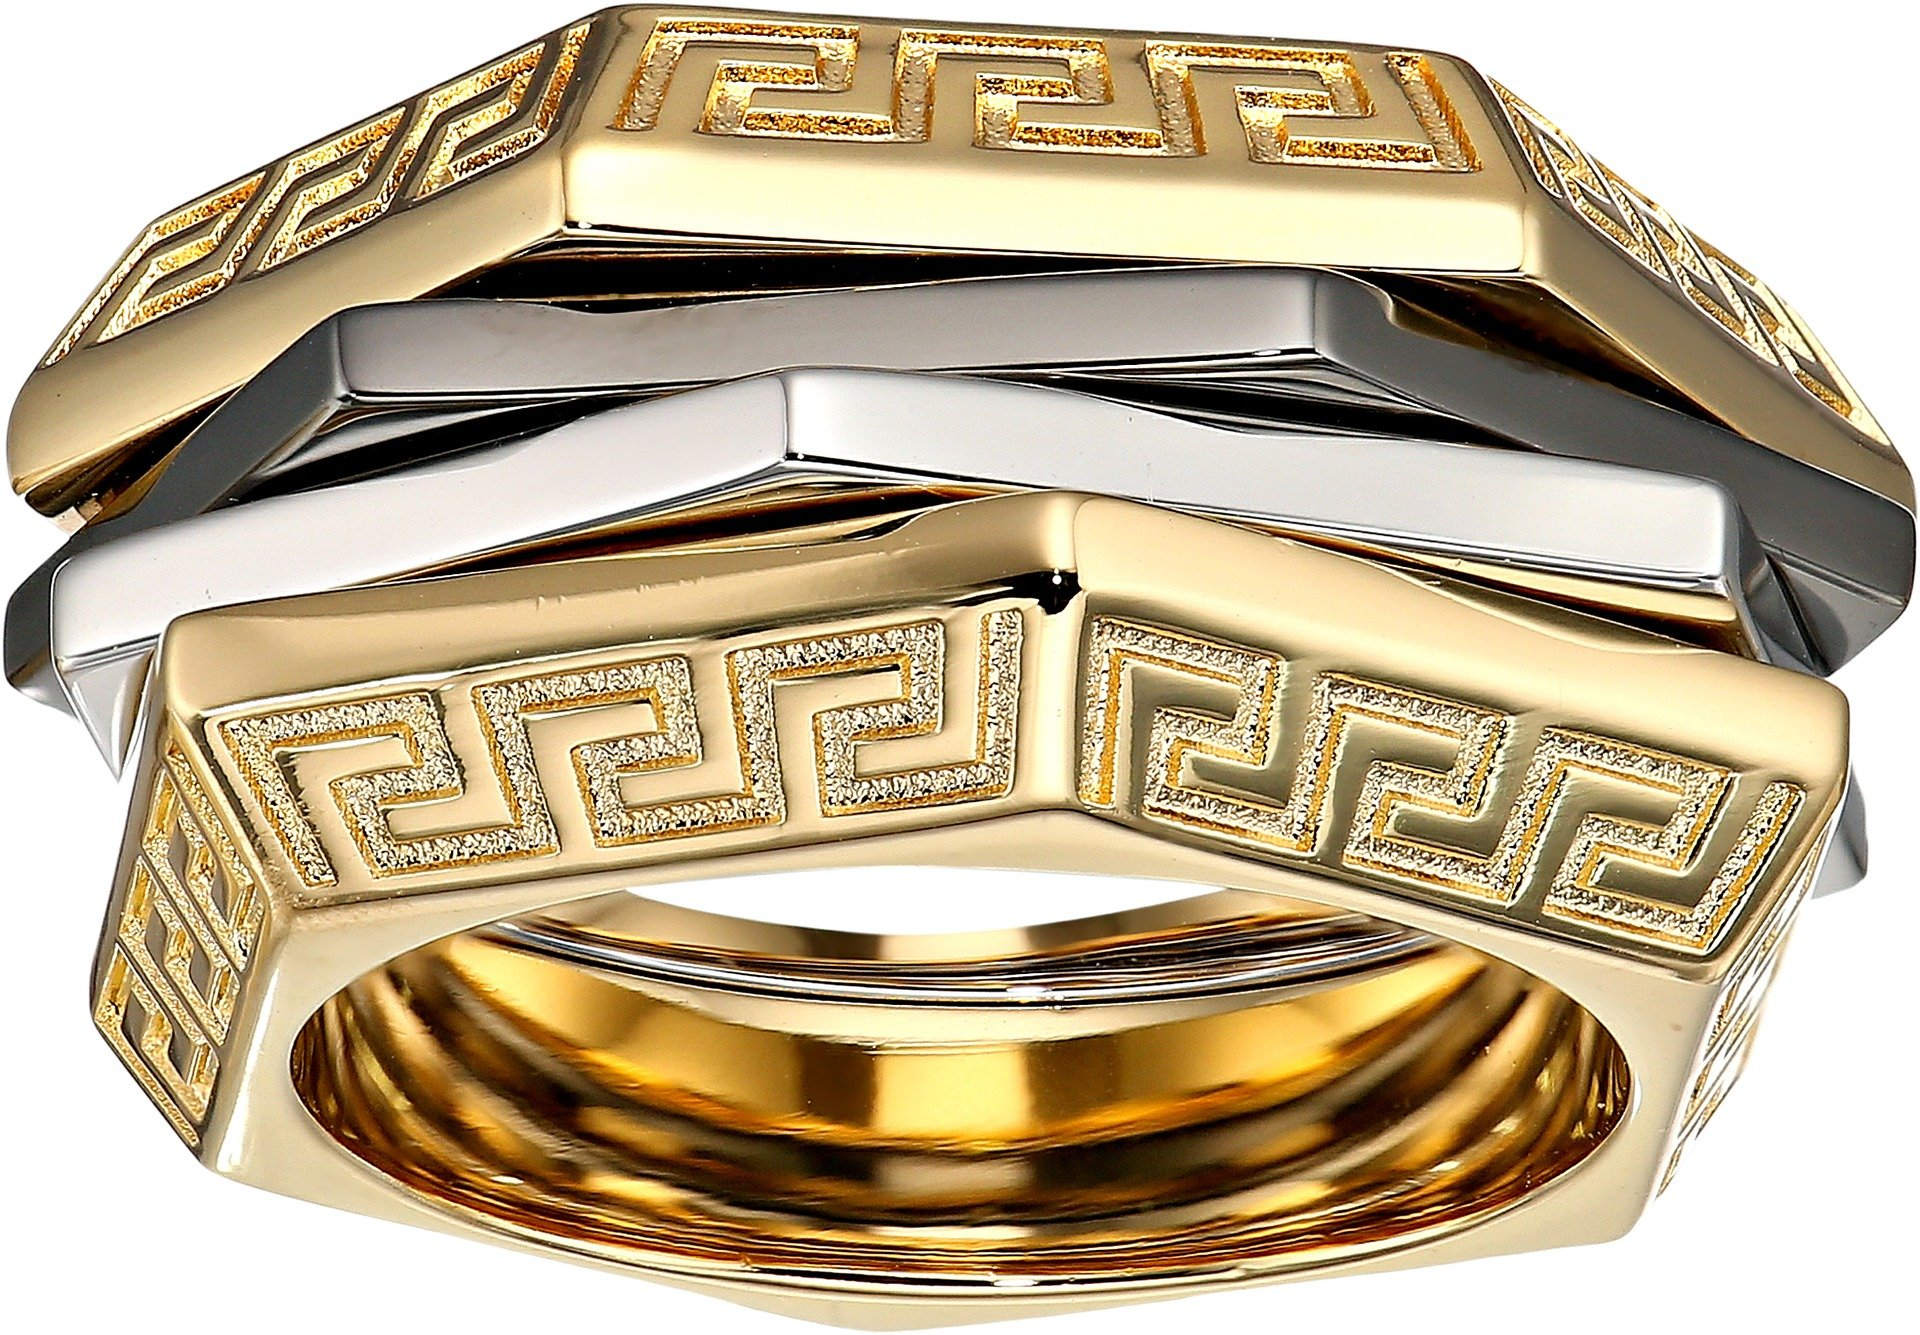 Versace Unisex Tricolor Ring Gold/Silver/Black Ruthenium 19 (US 7.5)